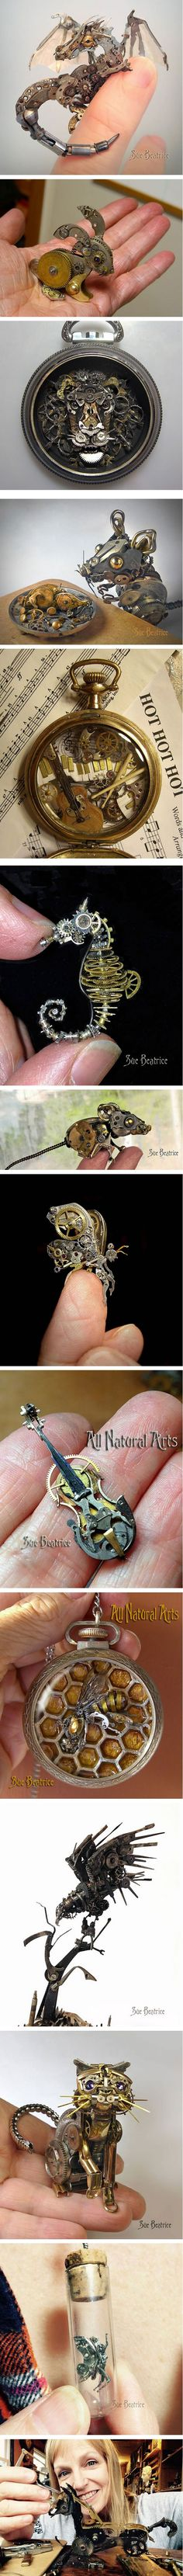 This Artist Recycles Old Watch Parts Into Steampunk Sculptures (By Susan…